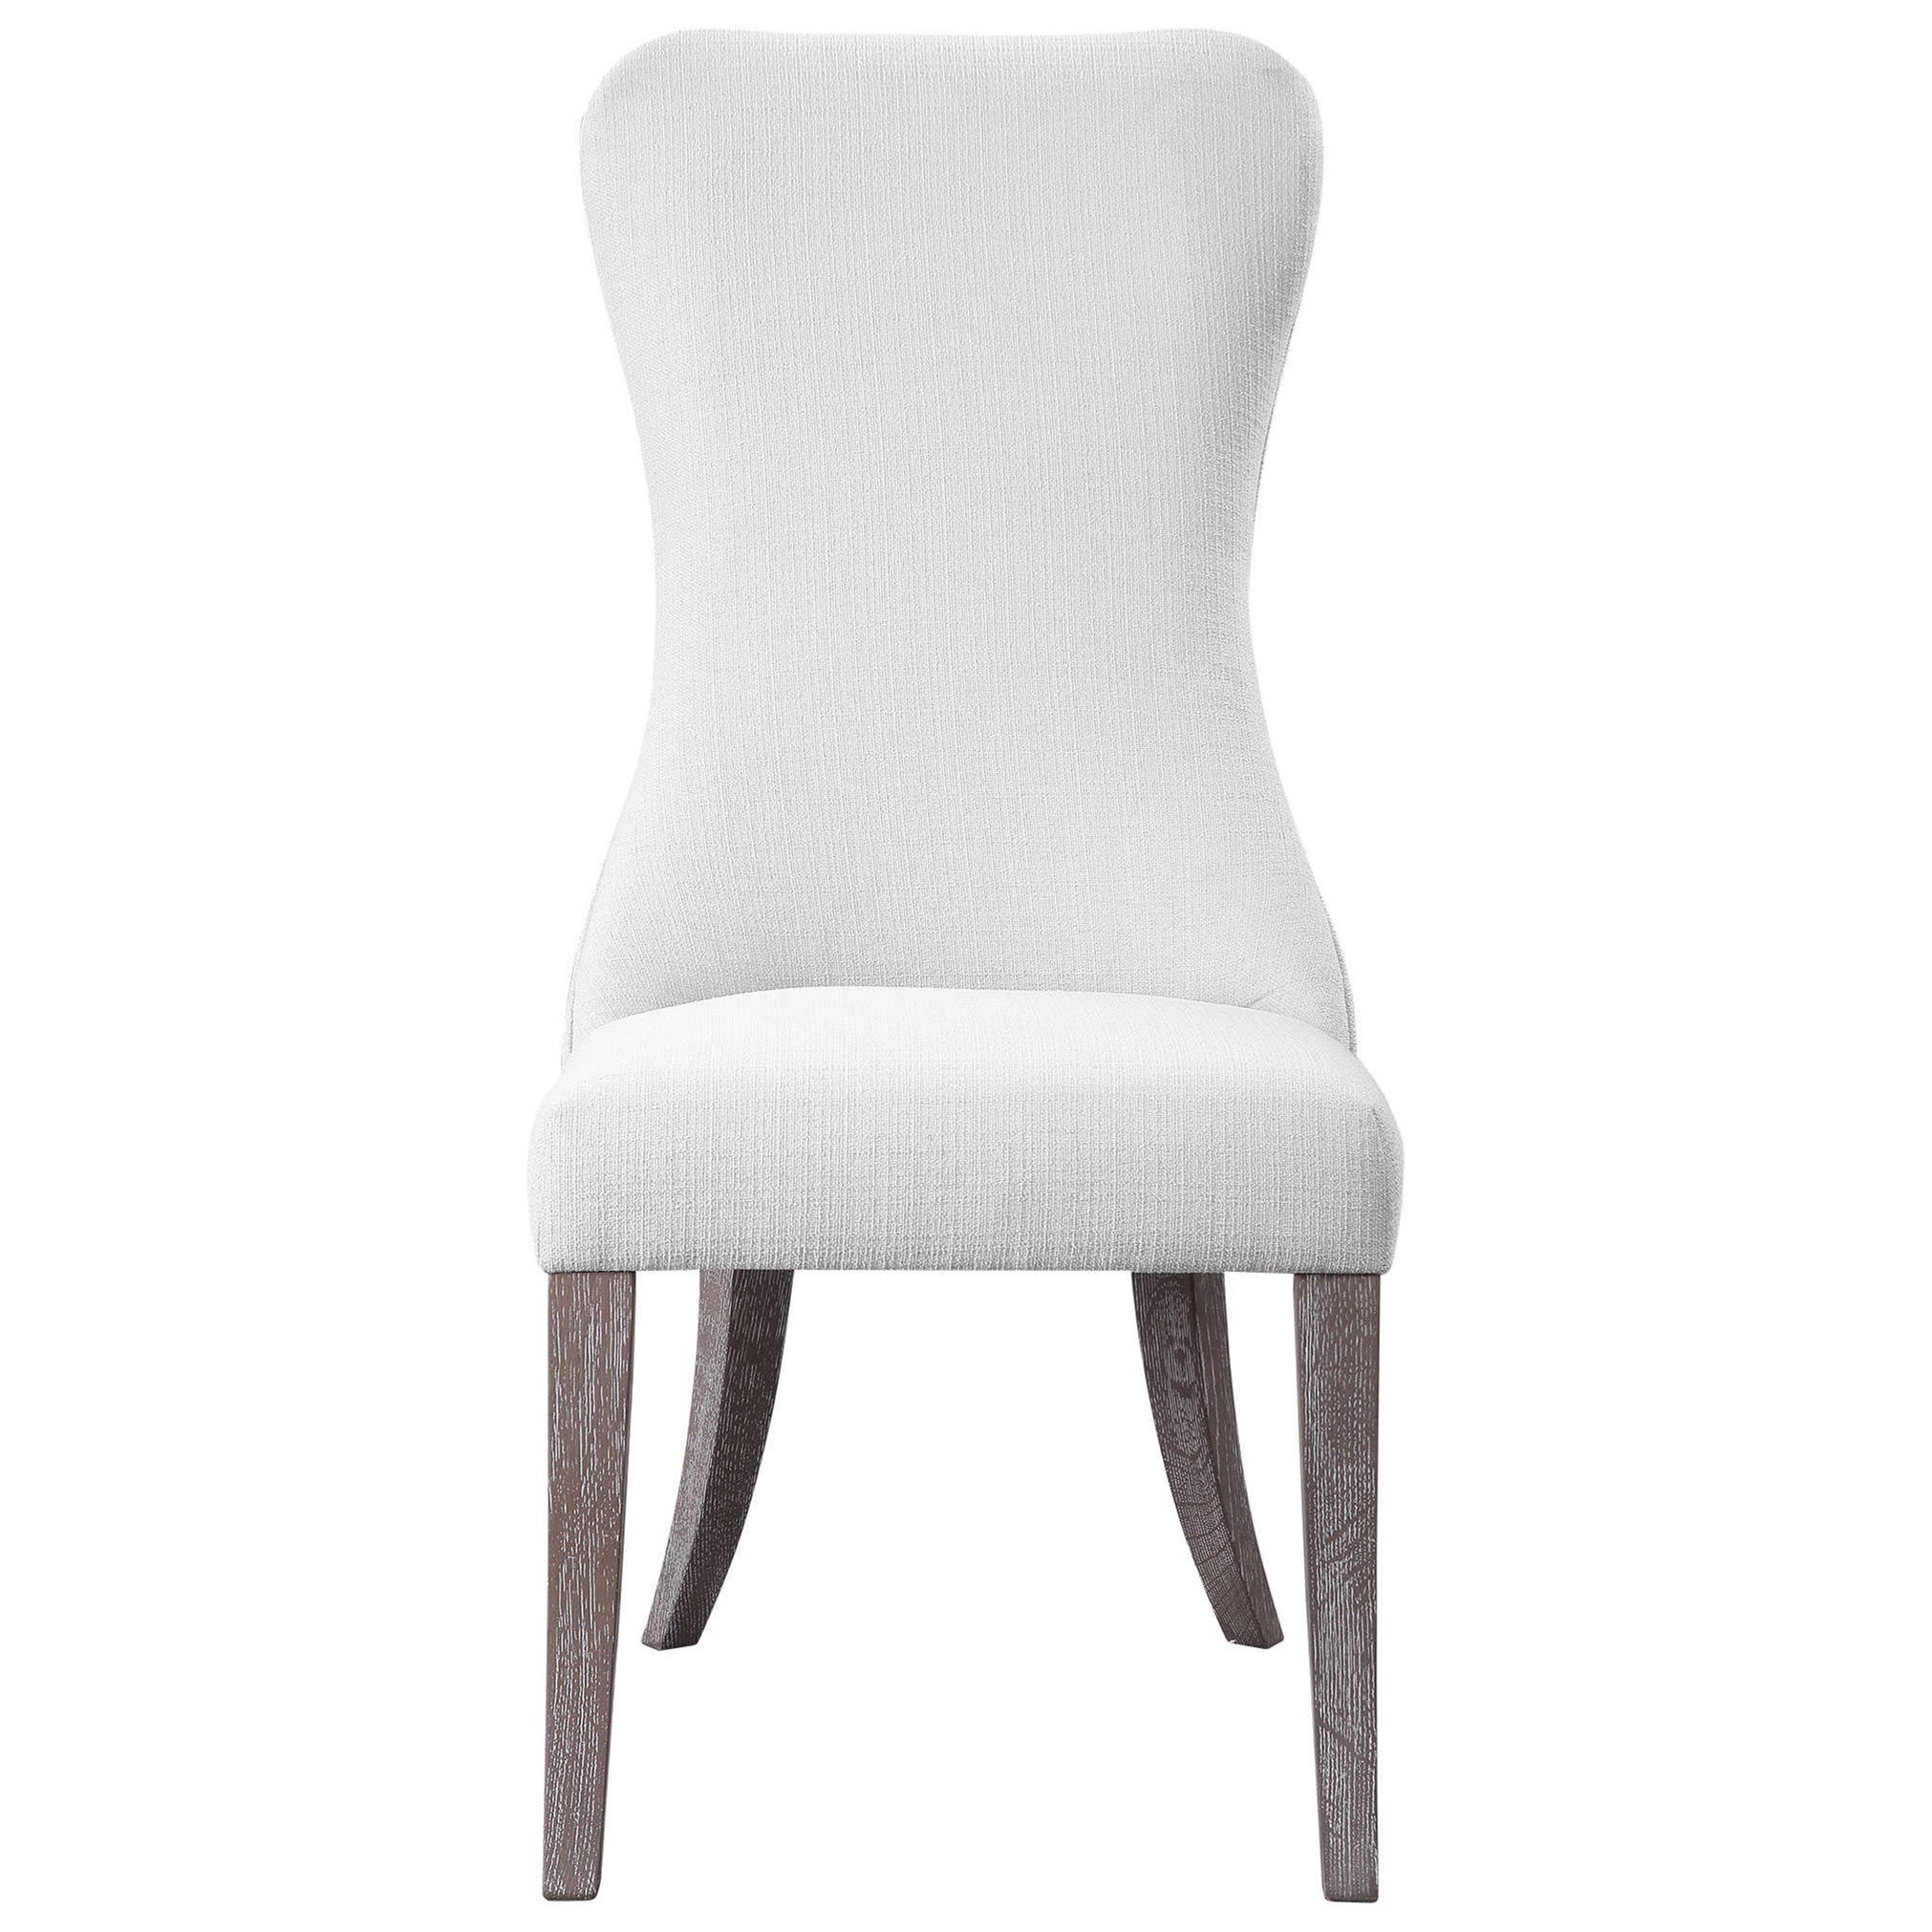 Accent Furniture - Accent Chairs Caledonia Armless Chair by Uttermost at Furniture Superstore - Rochester, MN